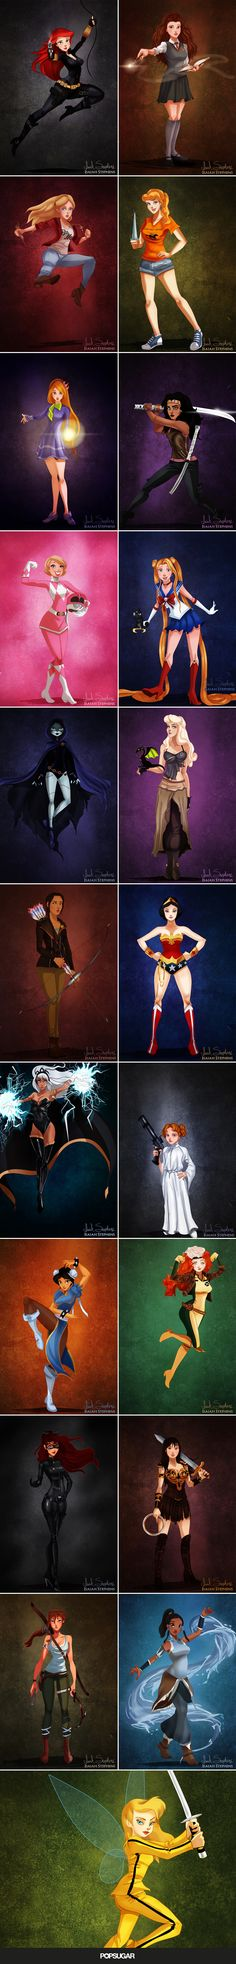 What Would the Disney Princesses Be For Halloween? This Artist Puts Them in Costumes See Disney characters dressed in Halloween costumes Disney Pixar, Walt Disney, Disney Girls, Disney And Dreamworks, Disney Love, Disney Magic, Disney Characters, Funny Disney, Disney Facts